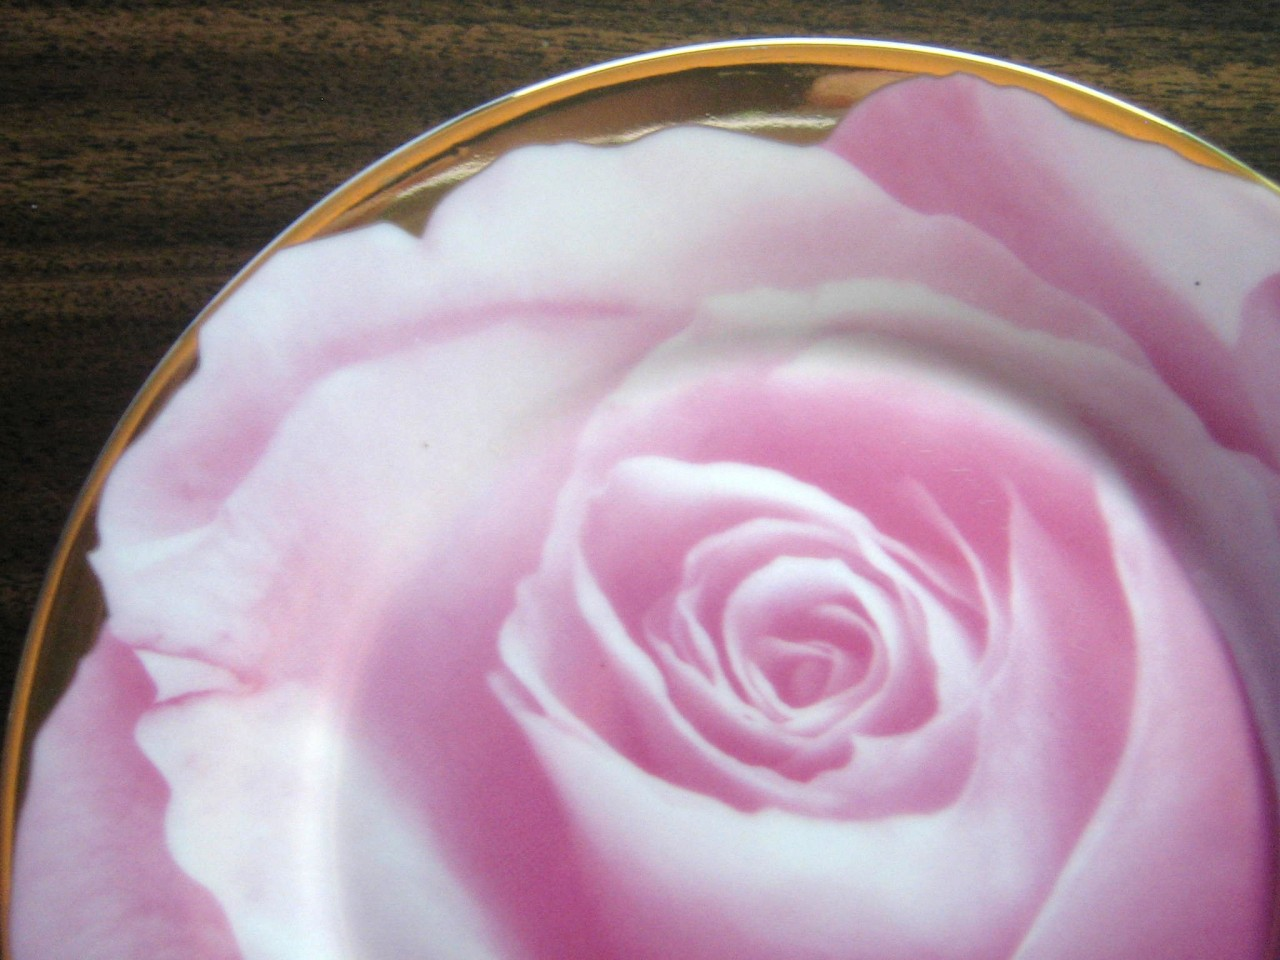 Pink Photographic Rose Bud Shiny Gold Trim Plate Edge www.DecorativeDishes.net